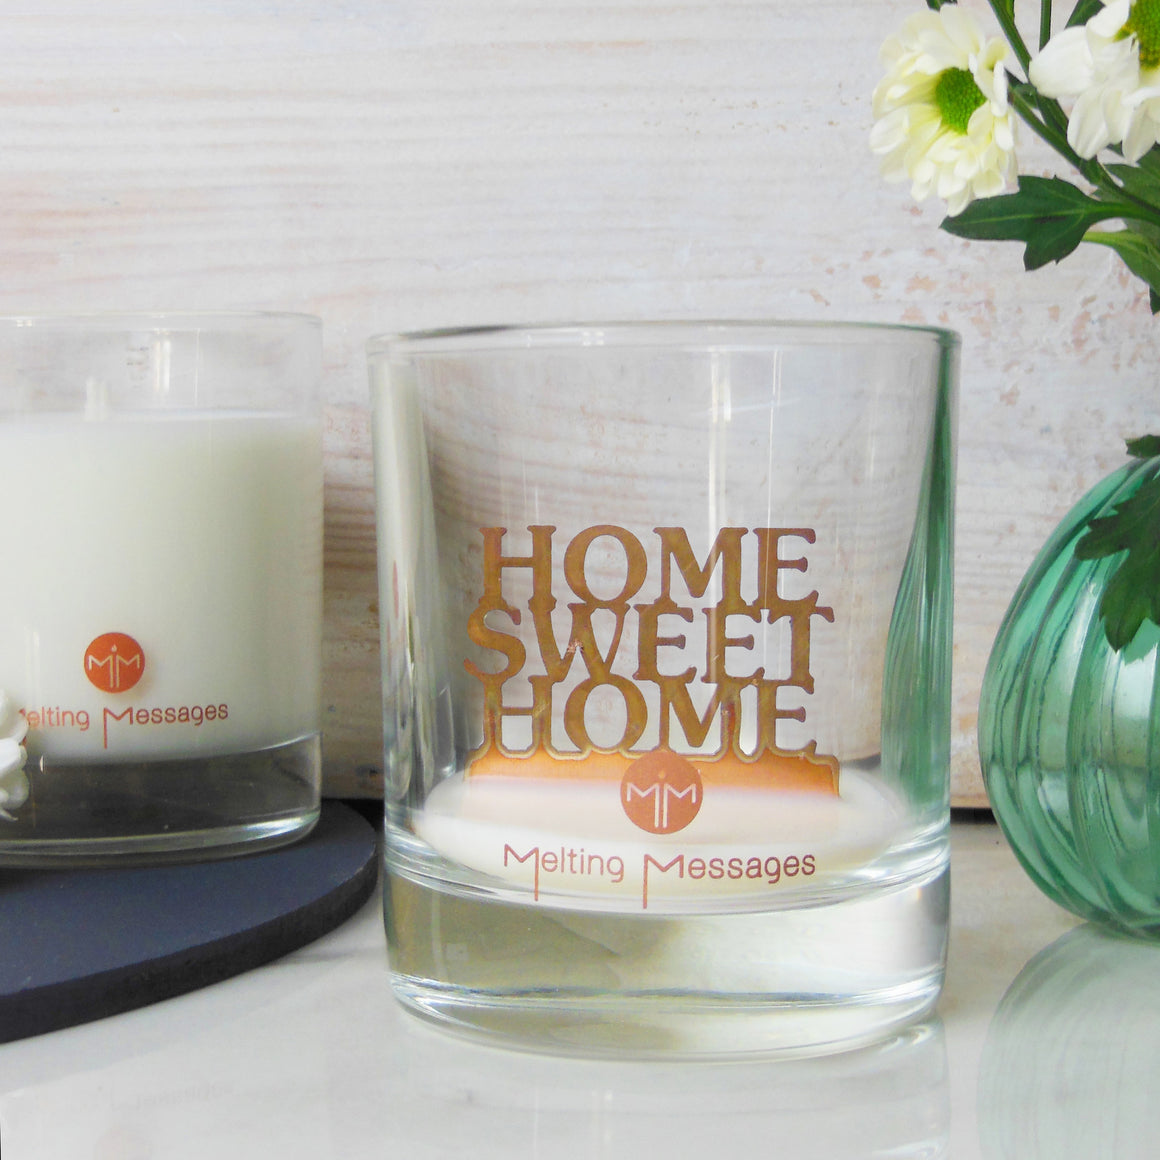 Melting Messages 'Home Sweet Home' Copper Candle - The Love Trees